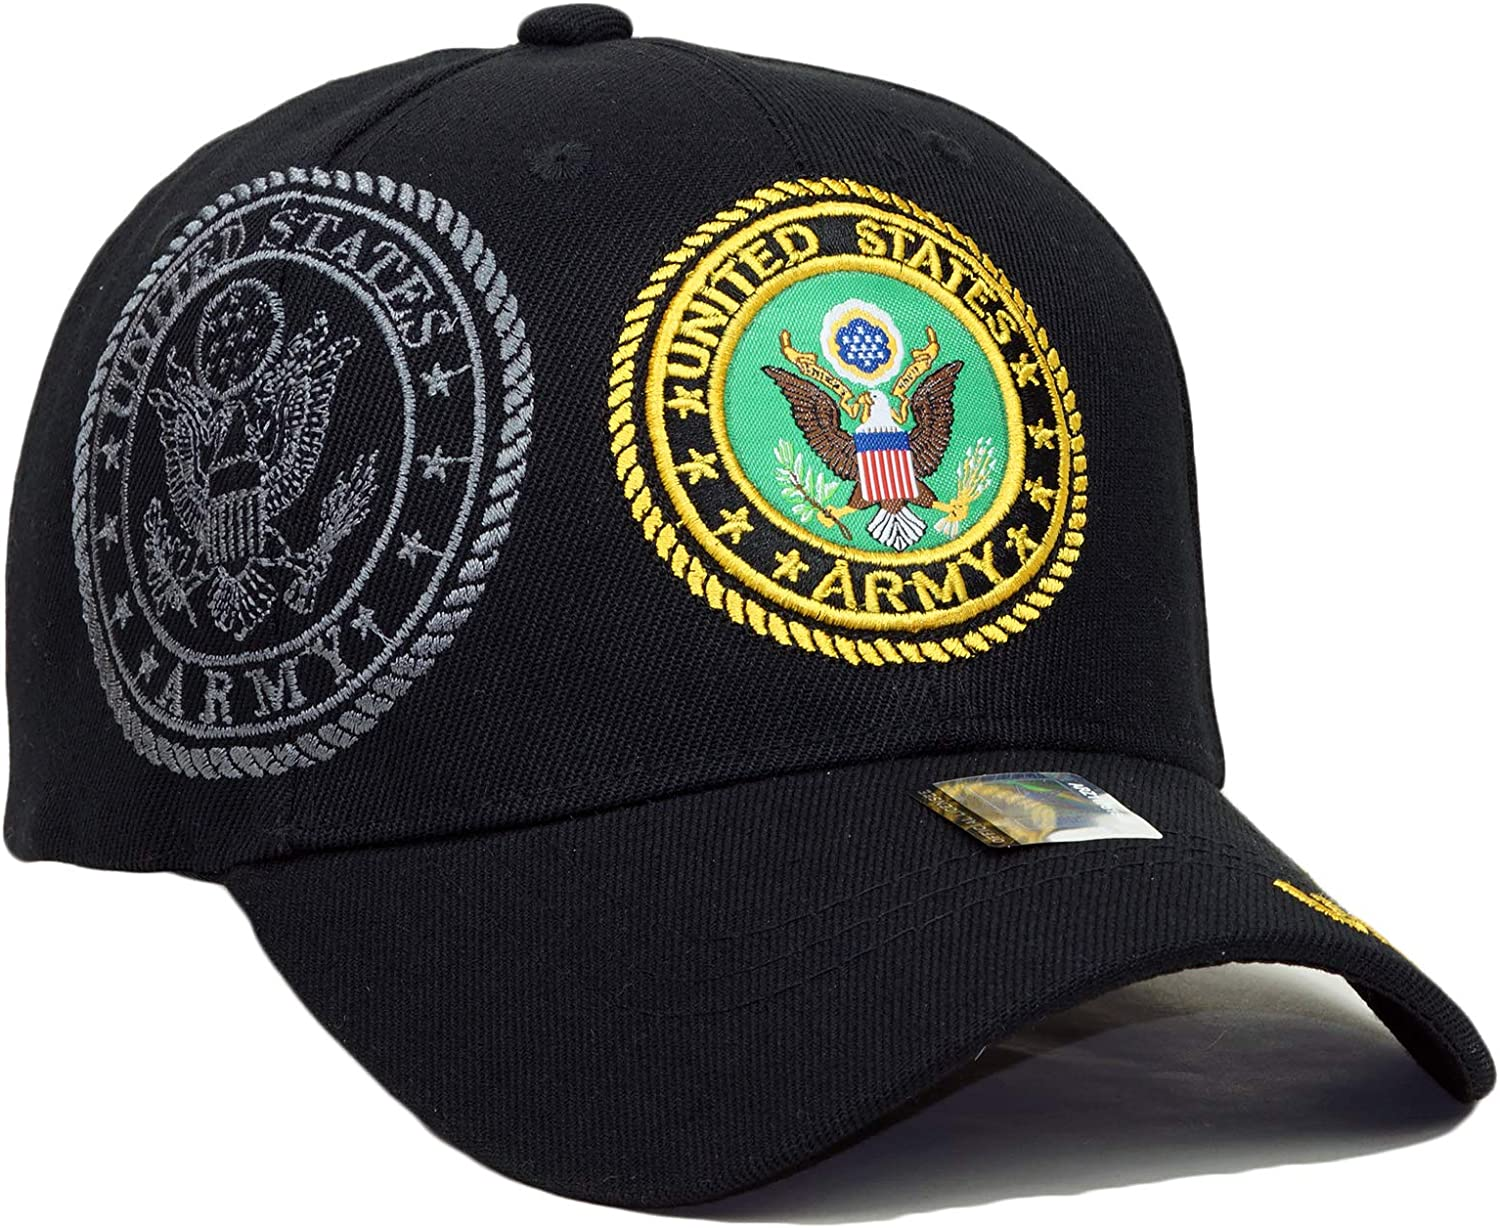 Army Veteran Official Licensed Embroidery Hat Adjustable Military Retired Baseball Cap